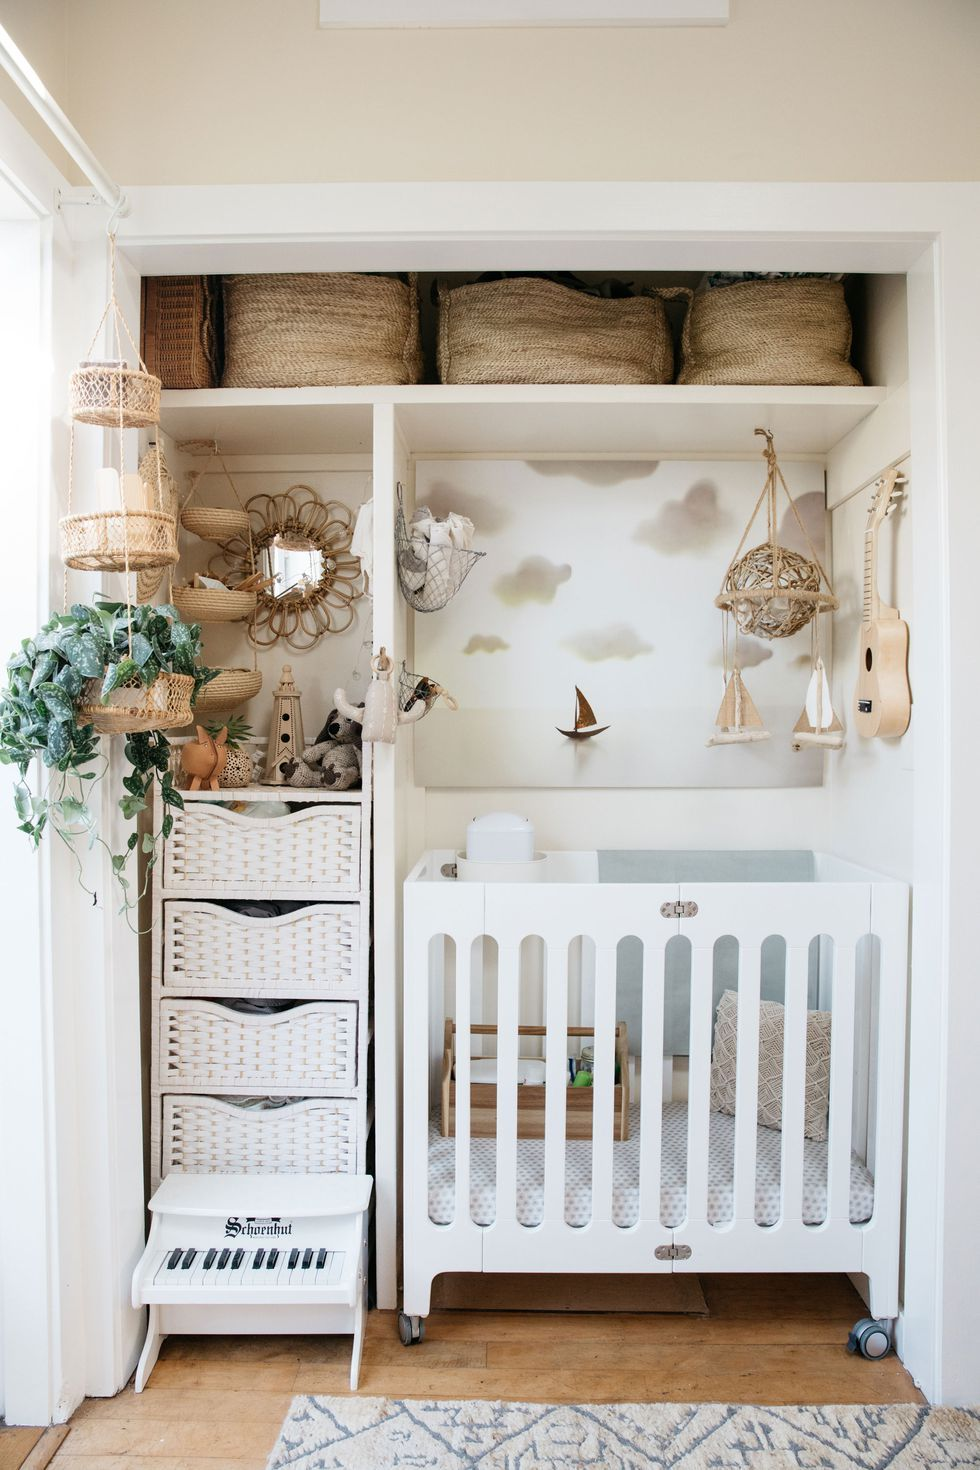 Exceptionnel A Hall Closet, Which Used To Store Clothing For The Couple, Is Now A Tiny  Nursery For Their Son. Baby Clothes And Necessities Like Diapers Are Stored  In The ...